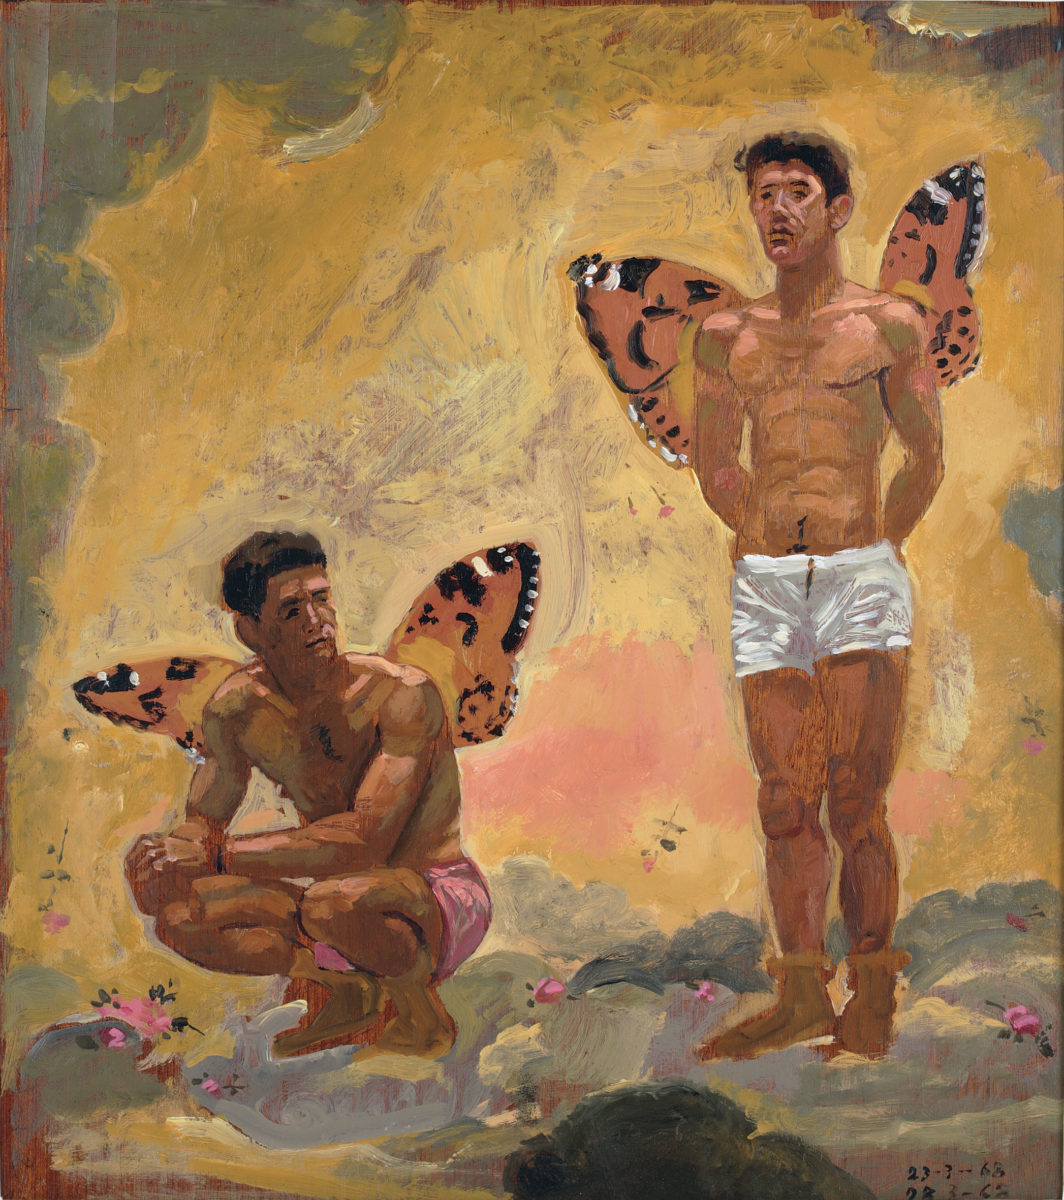 "Yannis Tsarouchis, ""Two men with butterfly wings"", 1968. Oil on plywood, 44.5x39.4cm. Yannis Tsarouchis Foundation, Inv. No. 631."